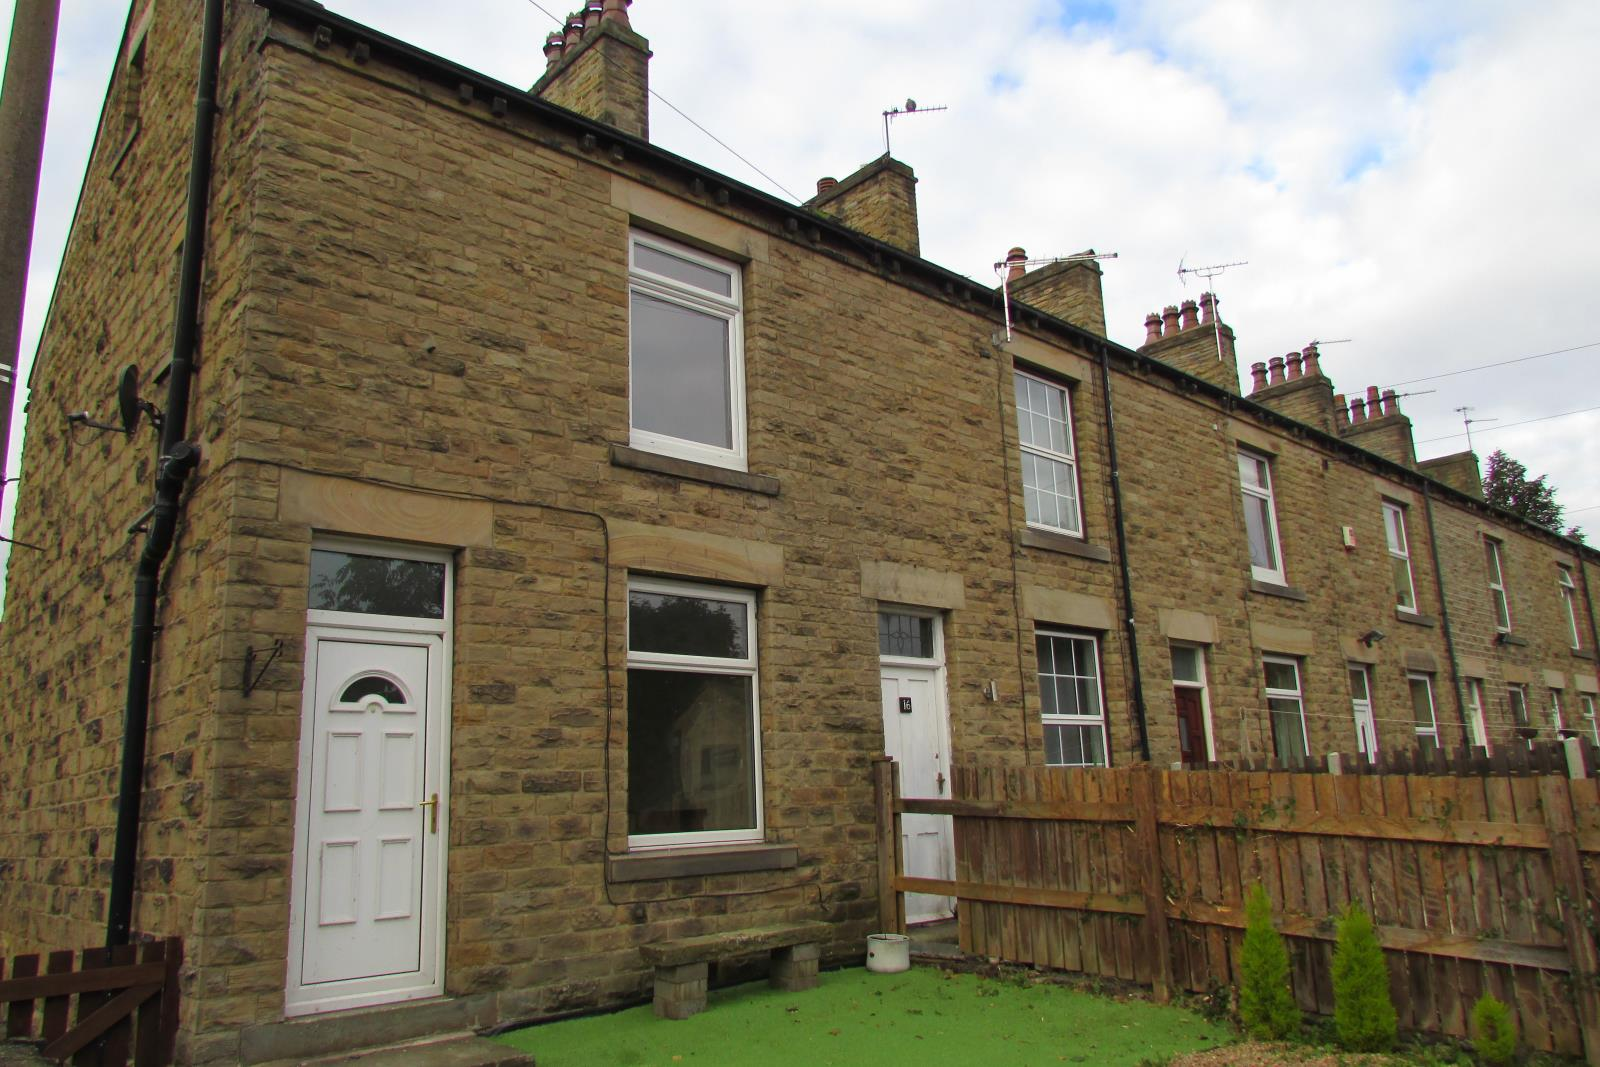 18 Norman Road, Denby Dale, Huddersfield HD8 8TH